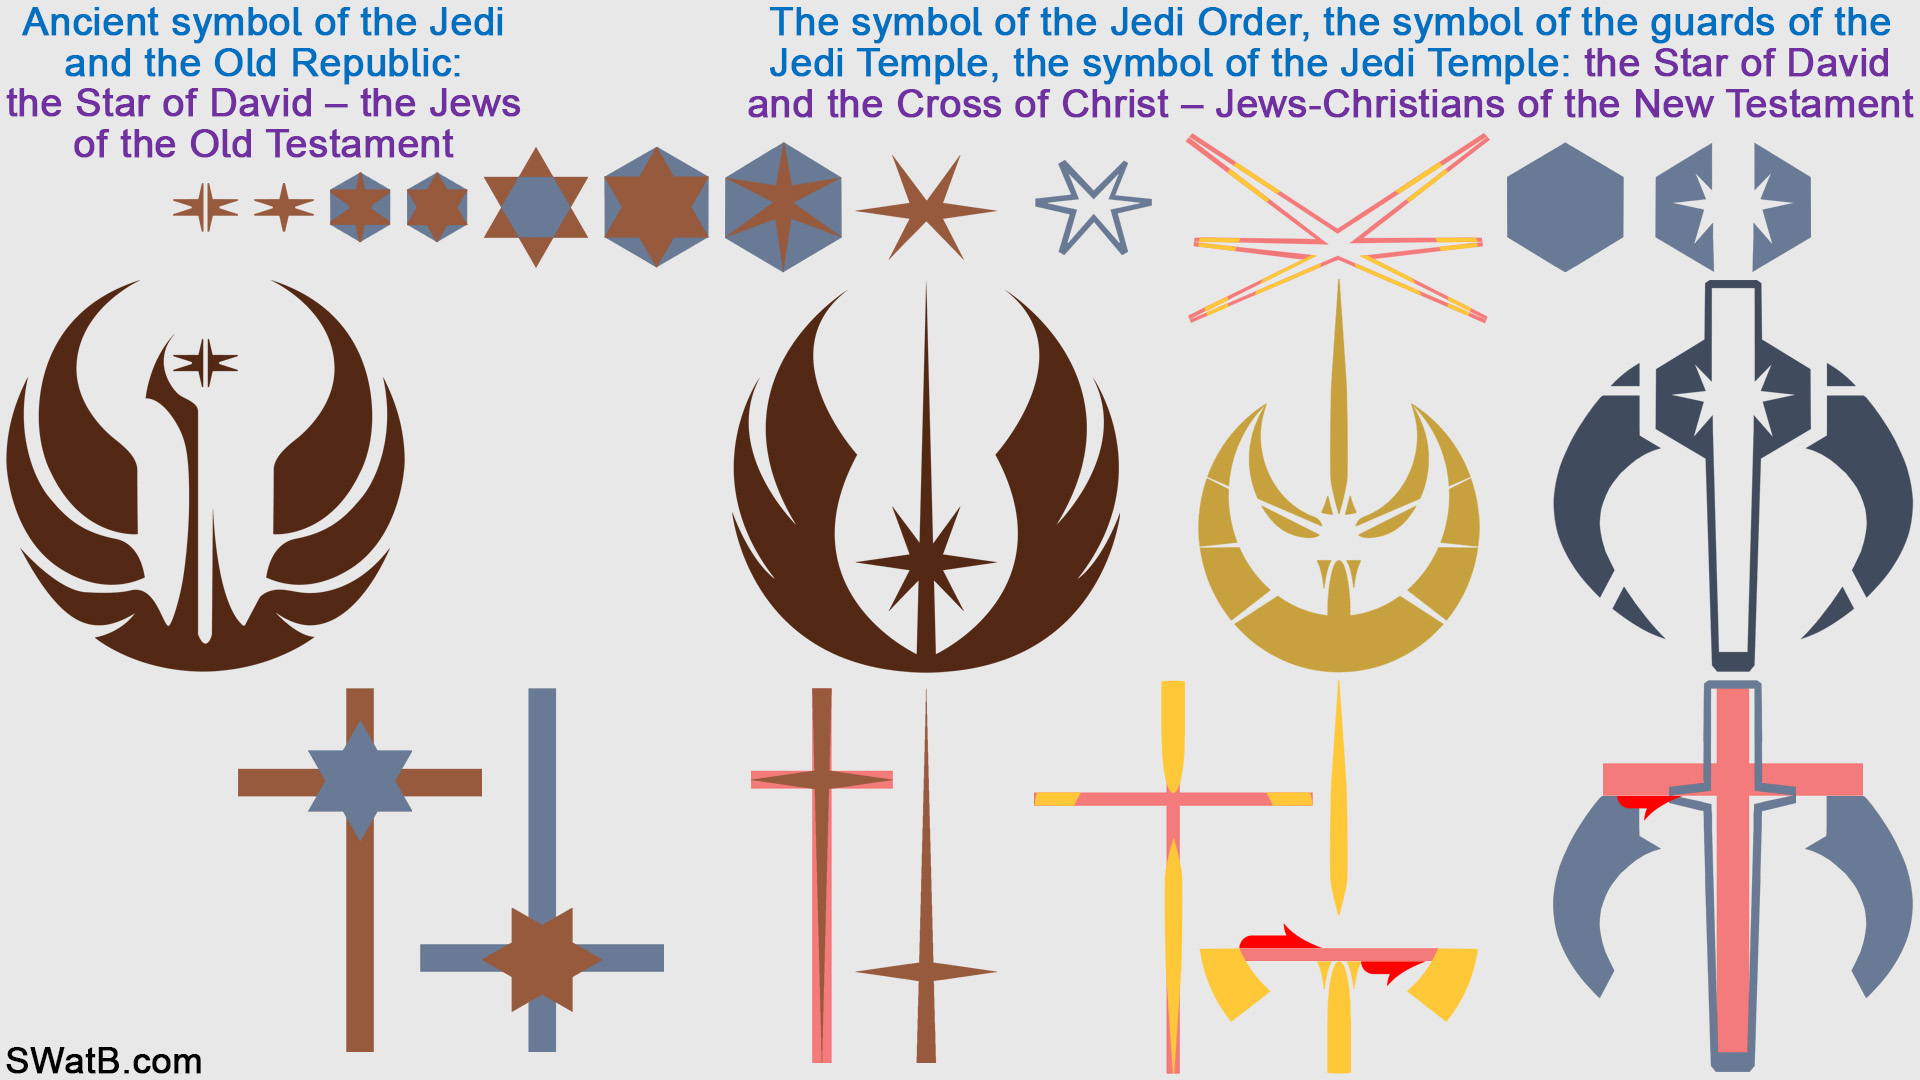 Saga jedi symbols symbols of jews and christians jedi jedi symbols symbols of jews and christians biocorpaavc